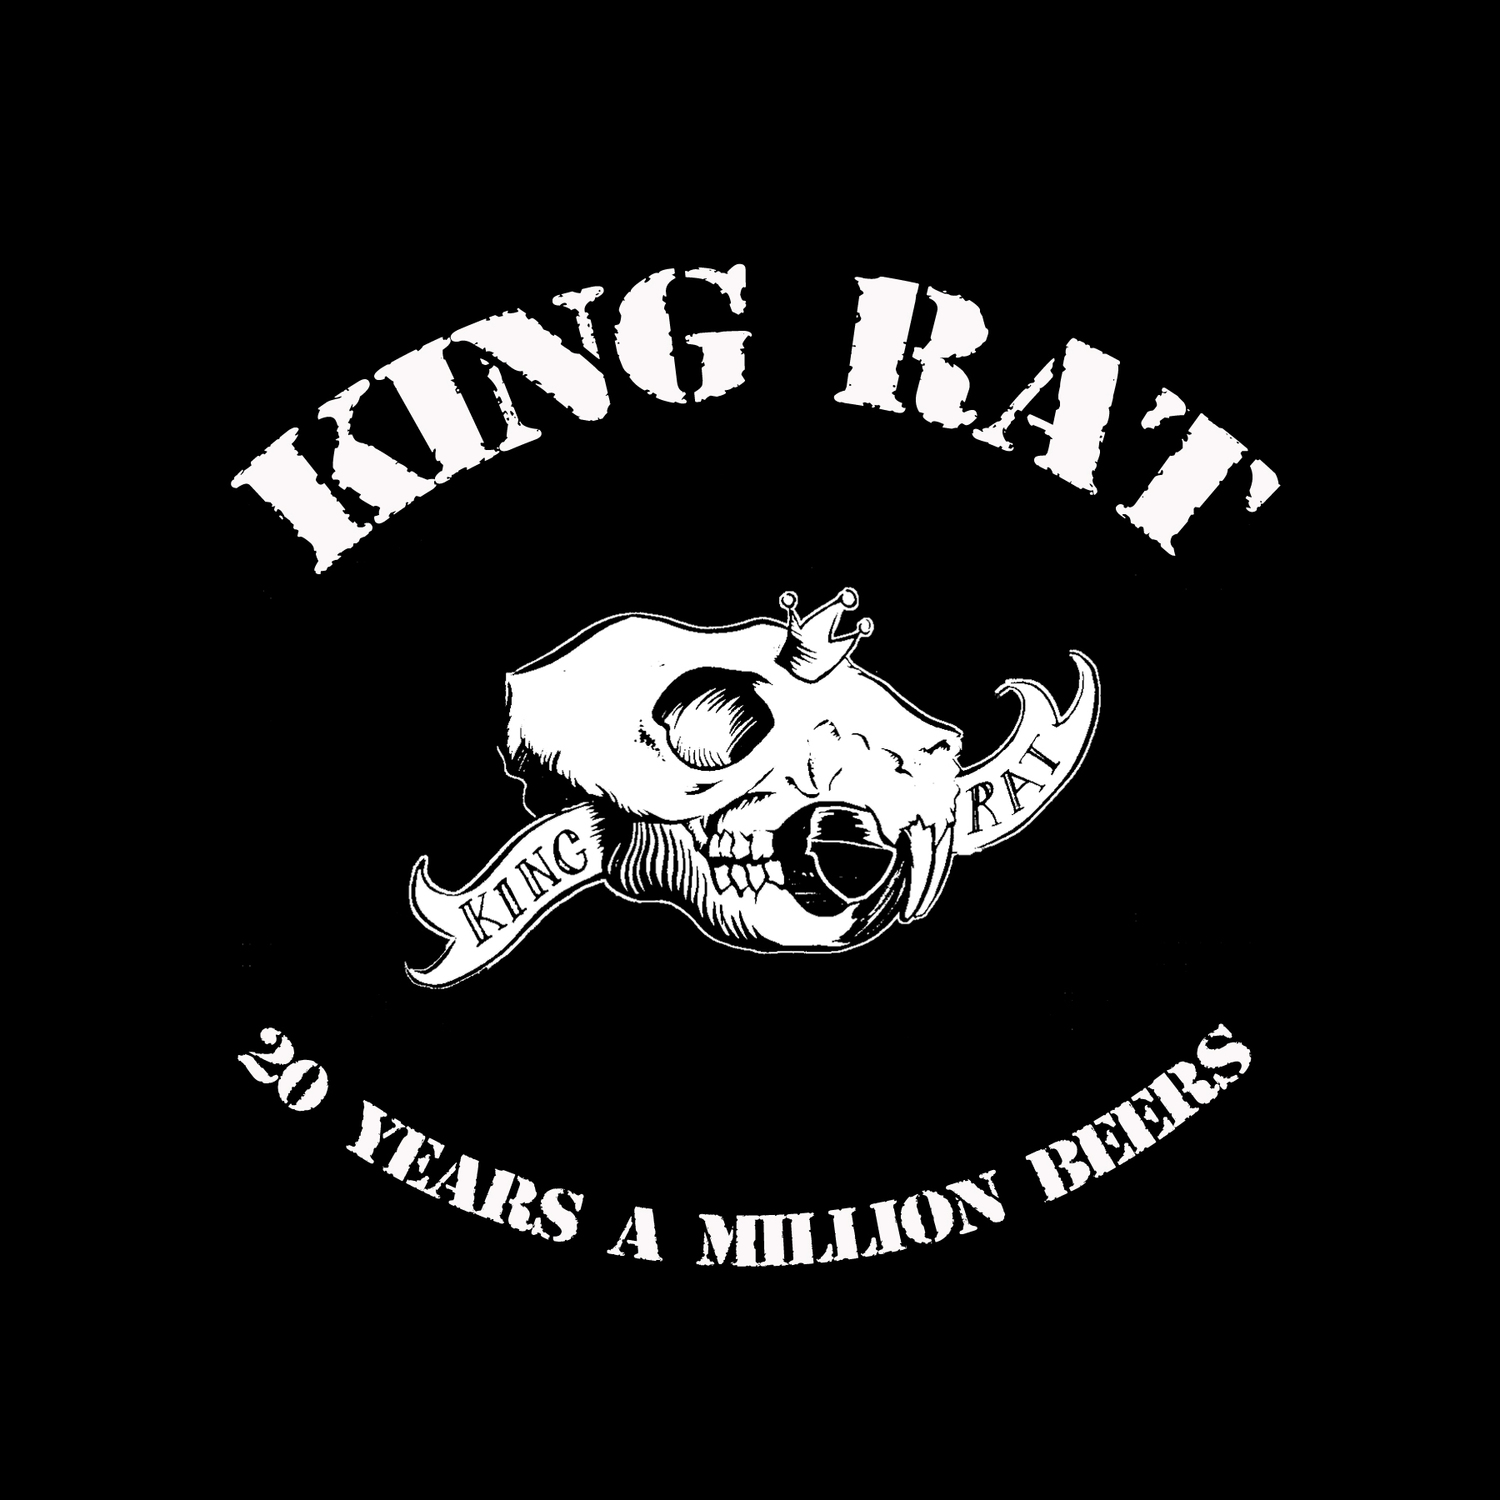 King Rat - This just in: King Rat opens for Face to Face on Friday May 1st 2015 at Summit Music Hall in Denver!!